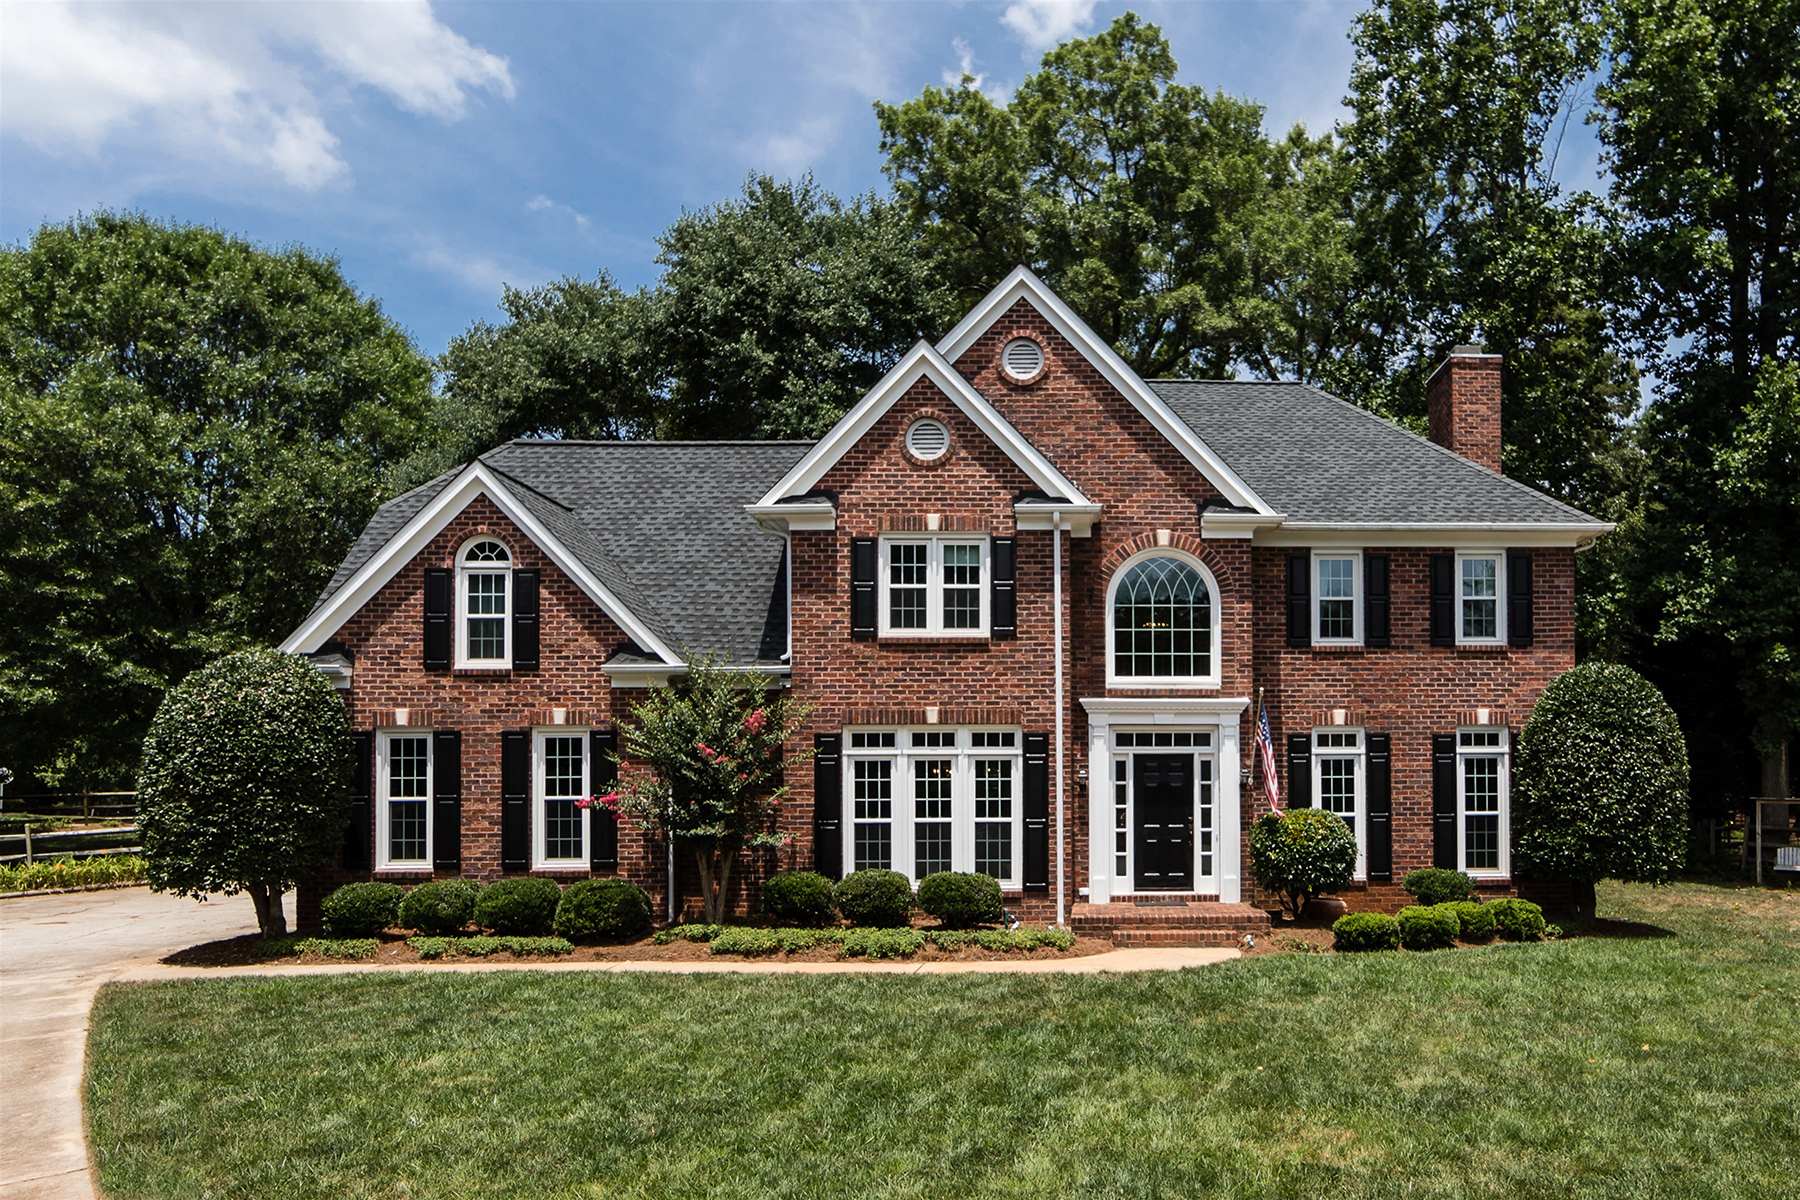 Single Family Homes for Active at WYNFIELD 14918 Hope Ct Huntersville, North Carolina 28078 United States